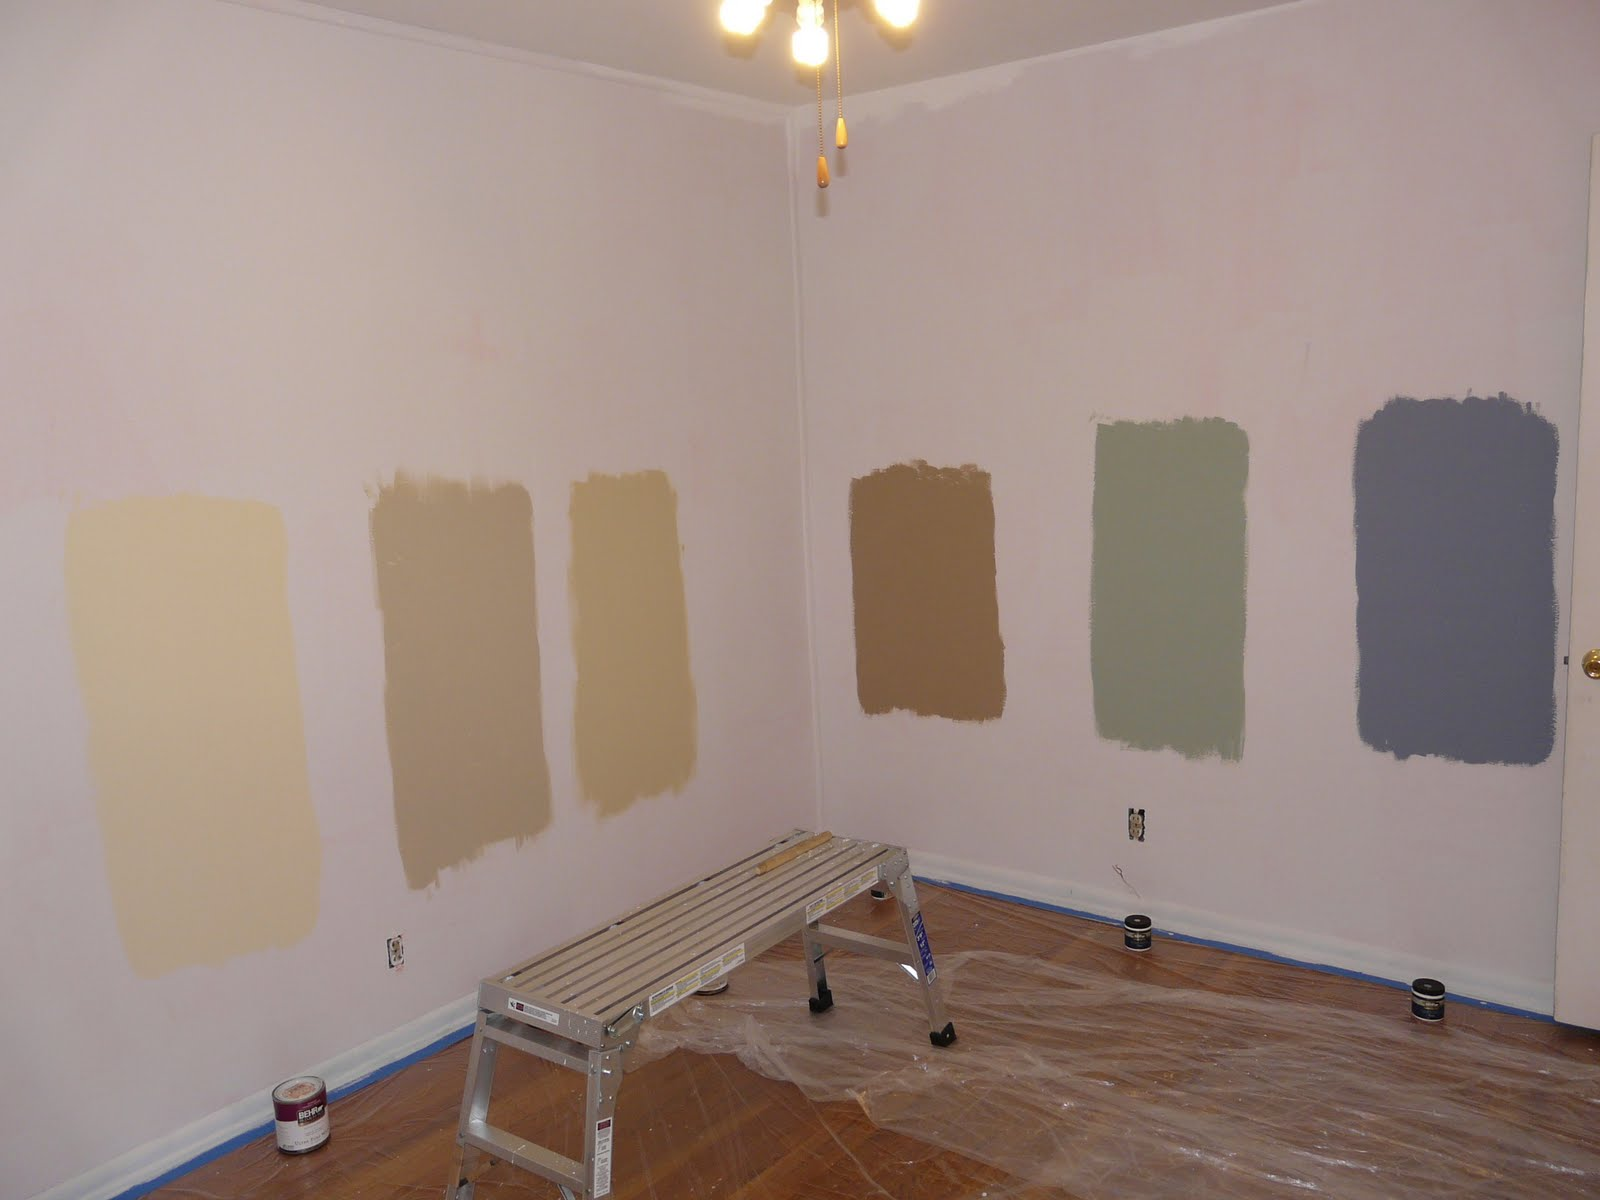 Home depot paint sample home painting ideas - Home depot paint design ideas ...